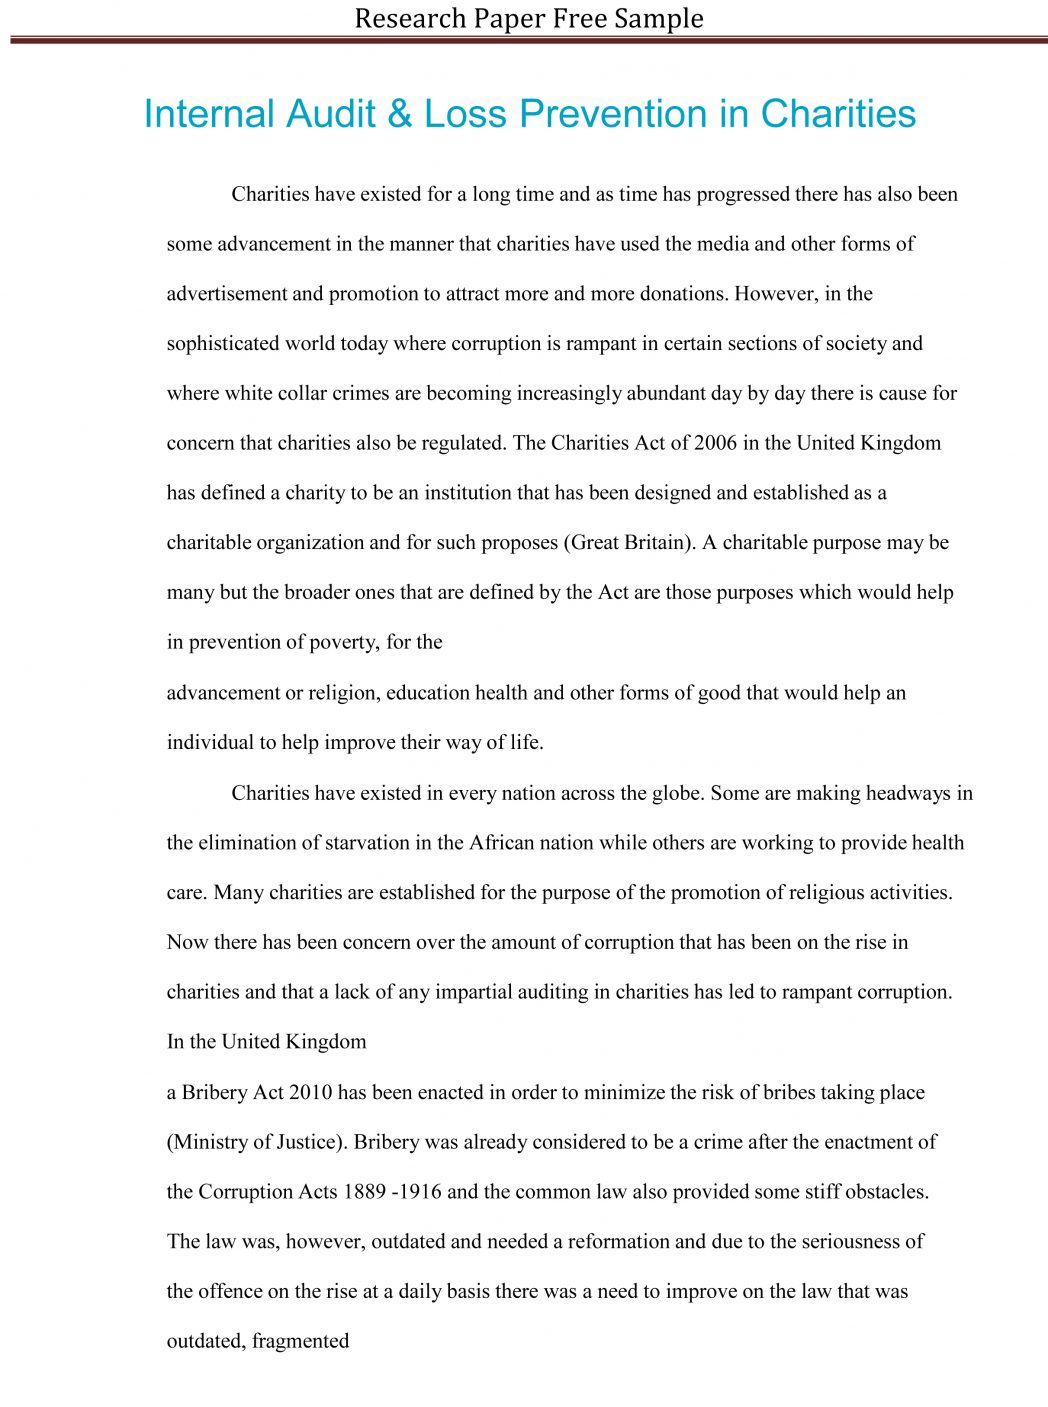 003 Research Paper Essay Example Examples Writing Based Informative About Language S Quizlet Will Teach You Fundamentally Is Challenging Your When Why Synthesizing Sources Important Introduction Unusual Format Pdf Papers Tagalog Full